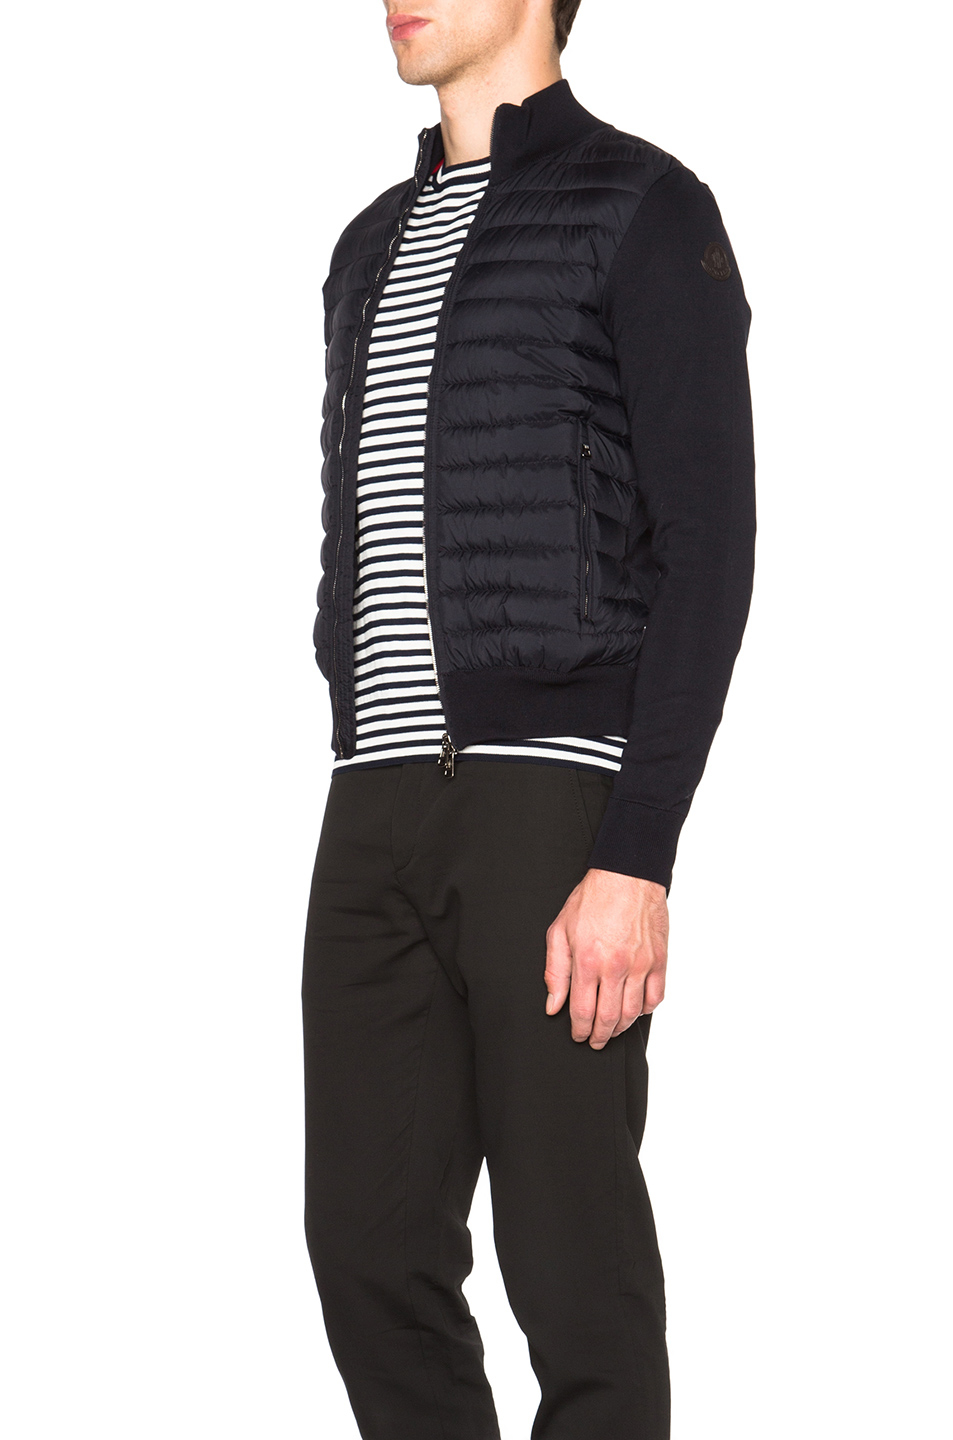 Canada Goose coats sale price - Moncler Maglia Tricot Cardigan Jacket in Black for Men (Blue) | Lyst